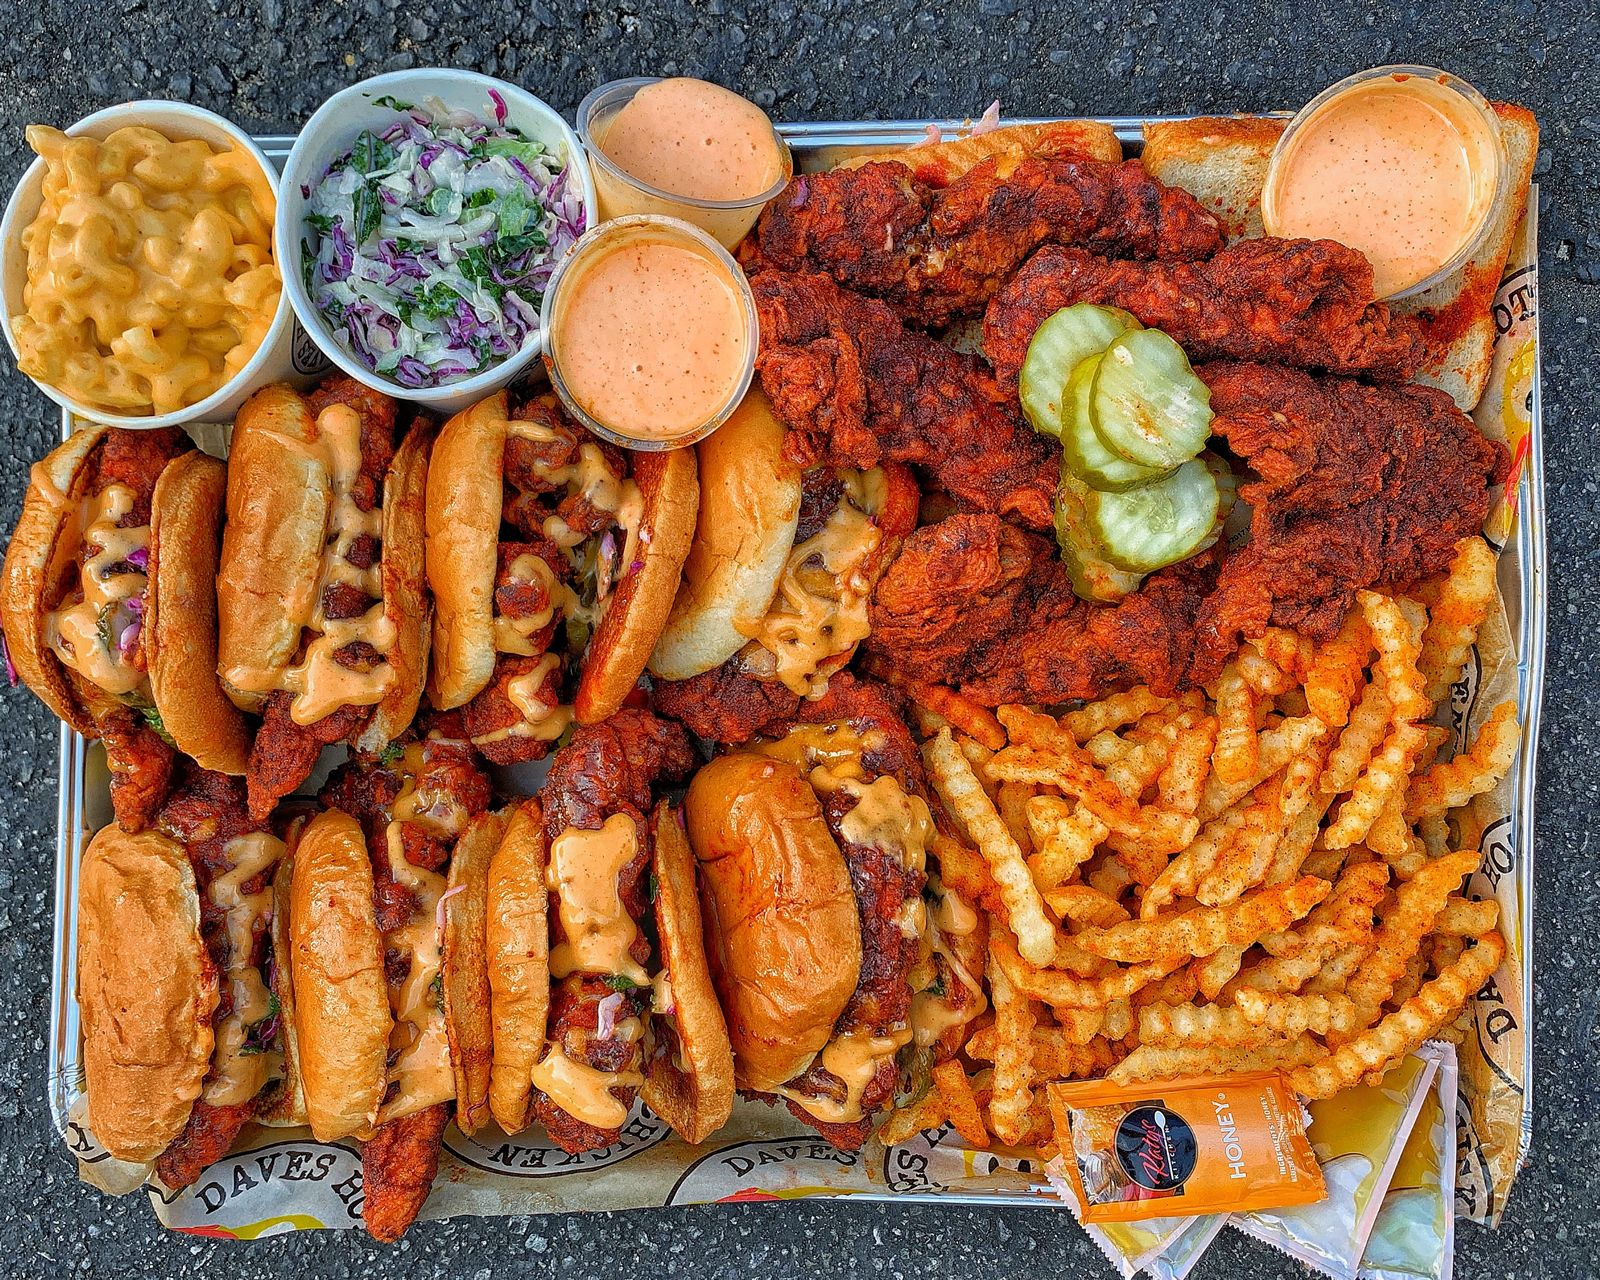 Dave's Hot Chicken Opens First Location in Dallas